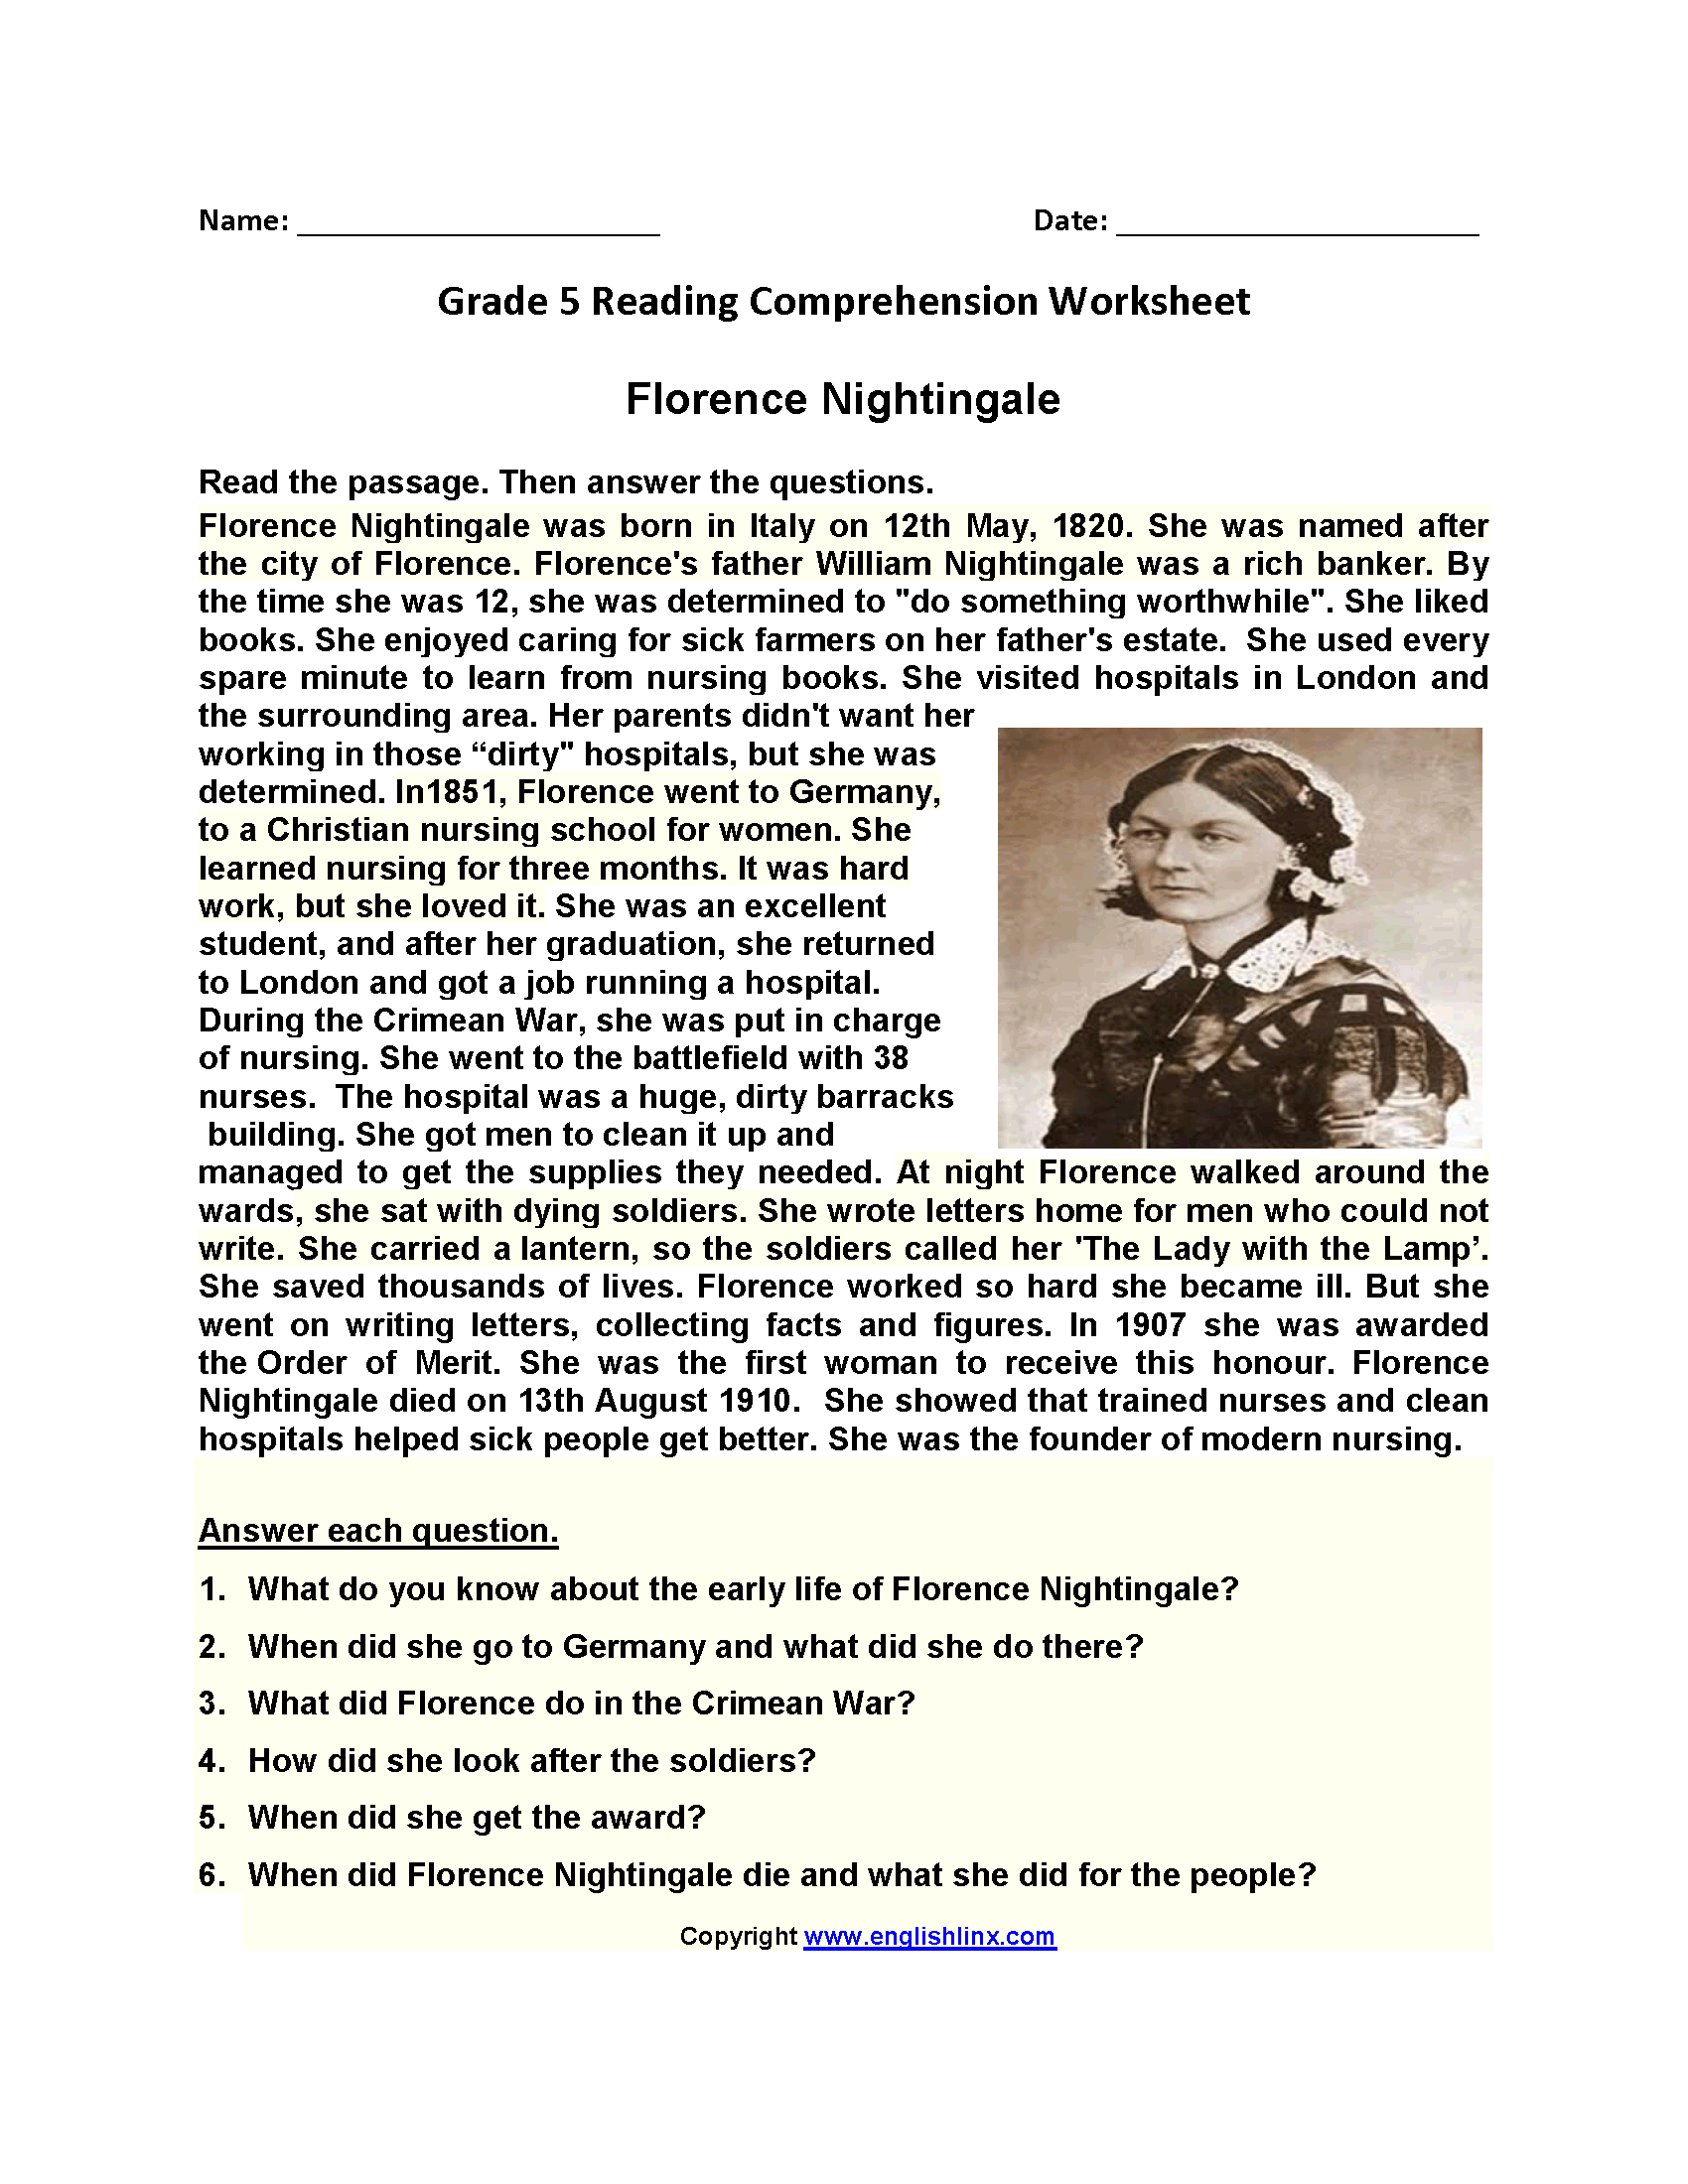 Florence Nightingale Fifth Grade Reading Worksheets